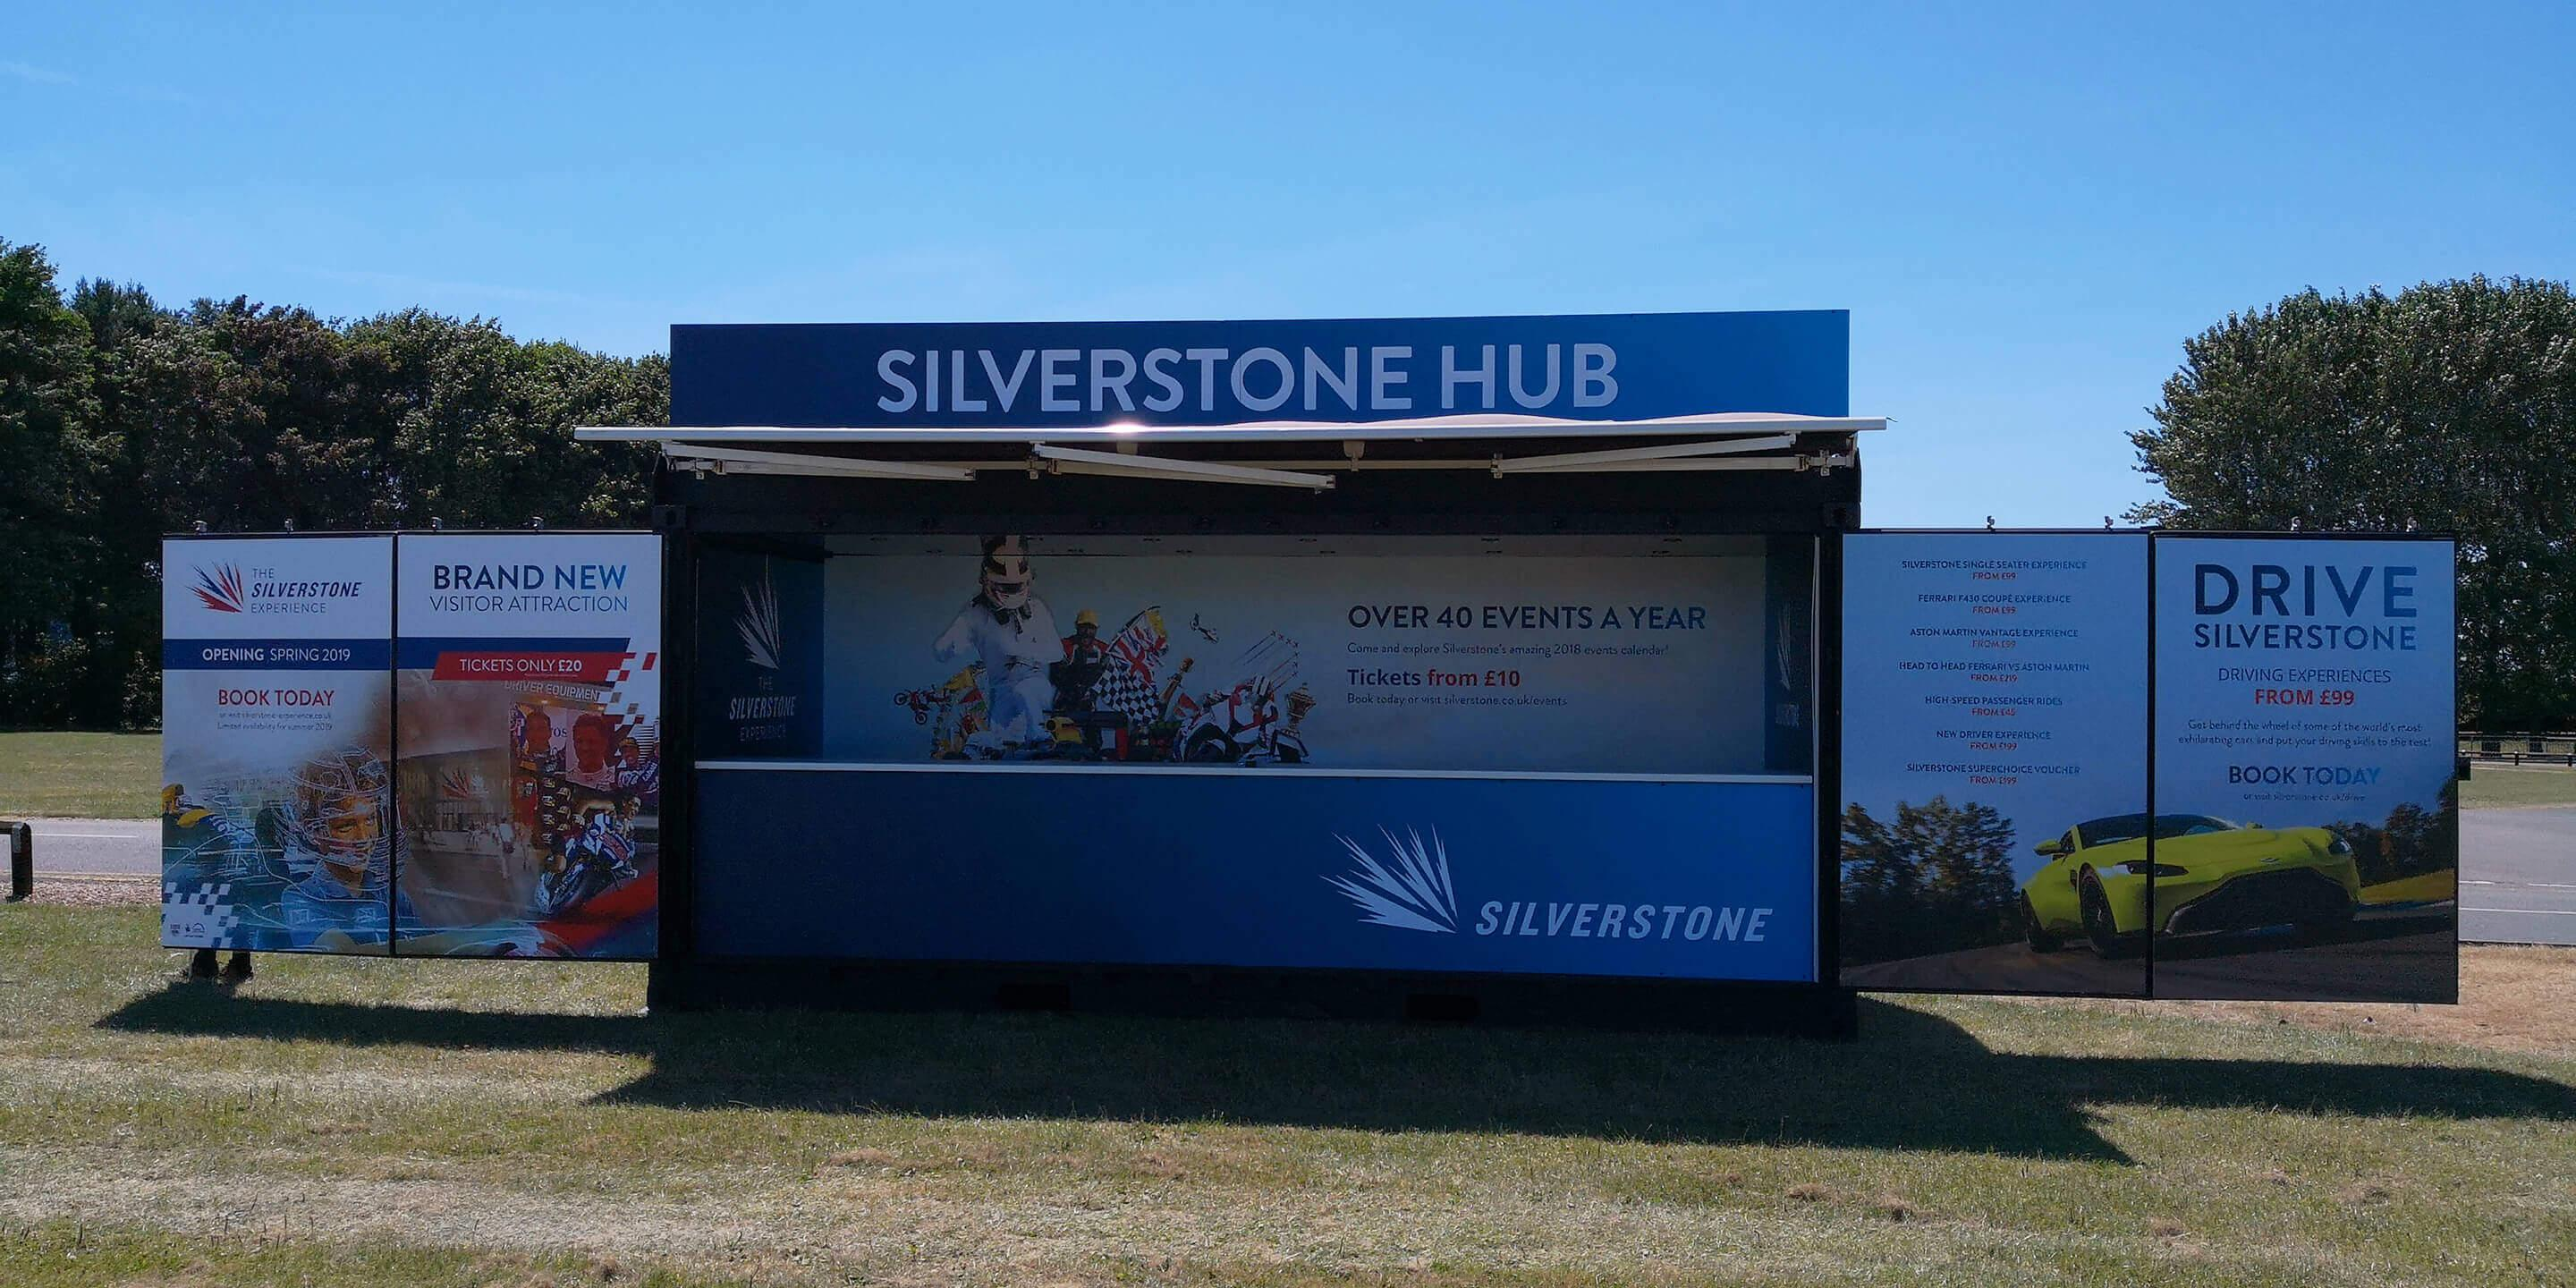 Shipping Container Conversions: Outlet Container for Silverstone Activation